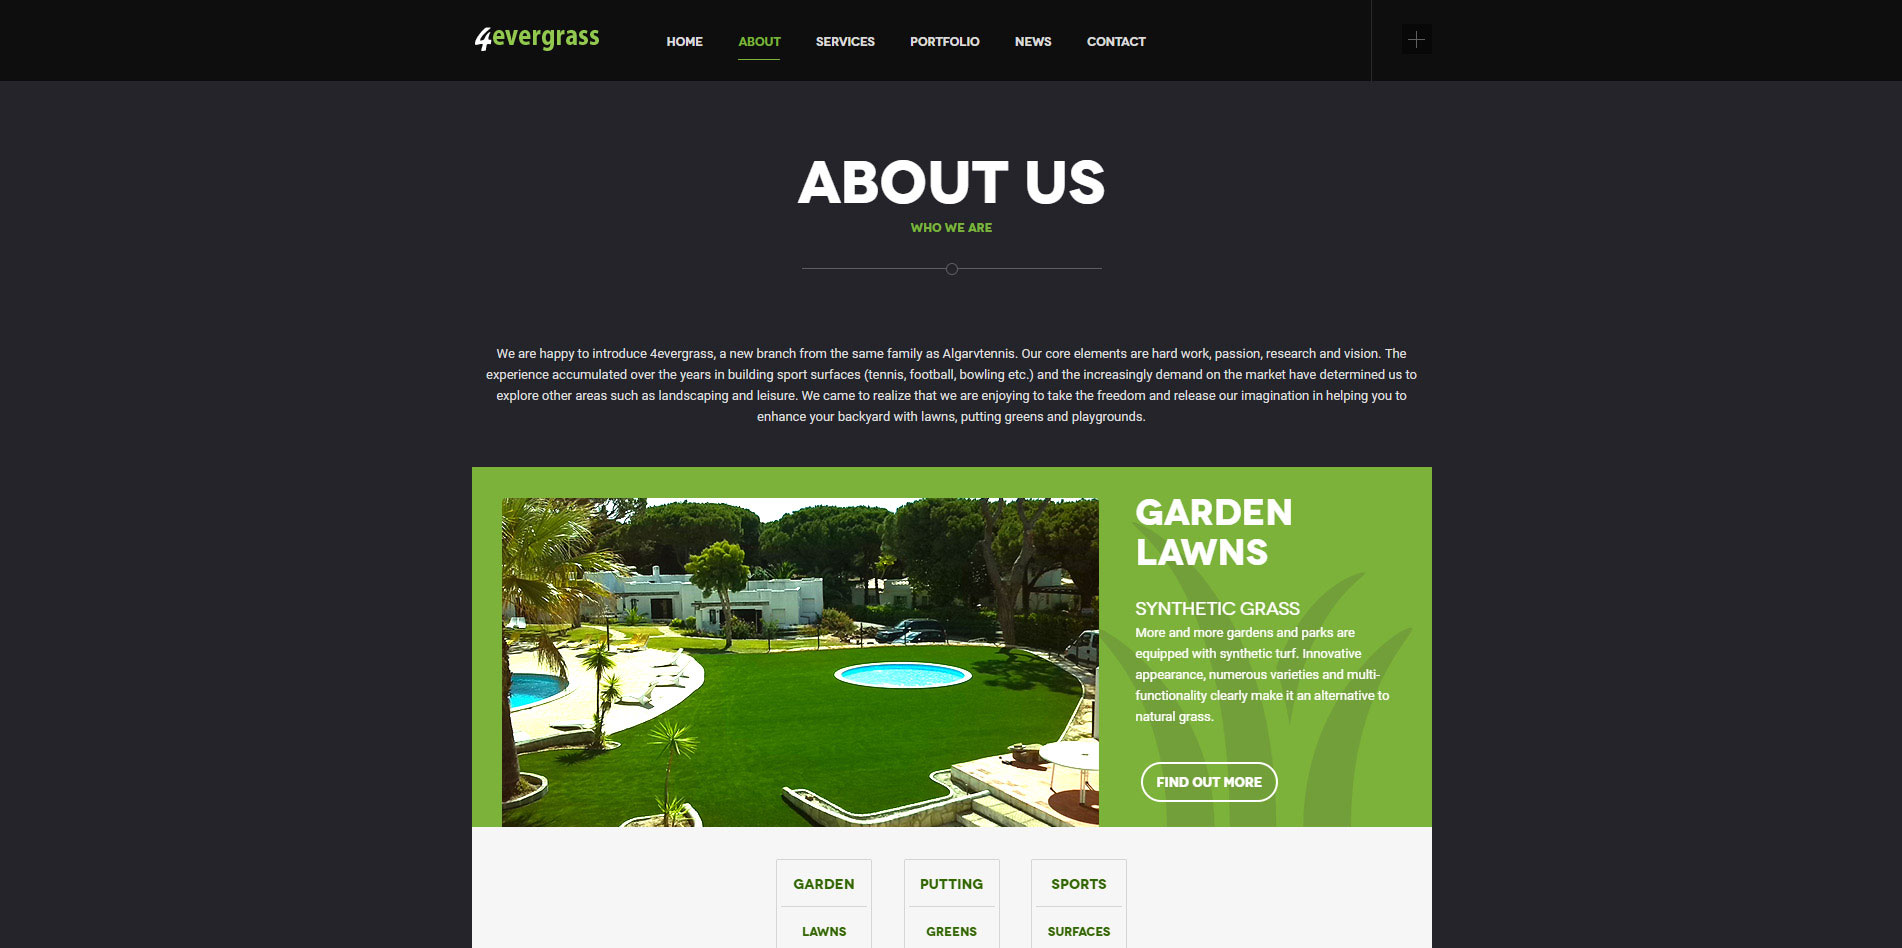 4evergrass website - about us page